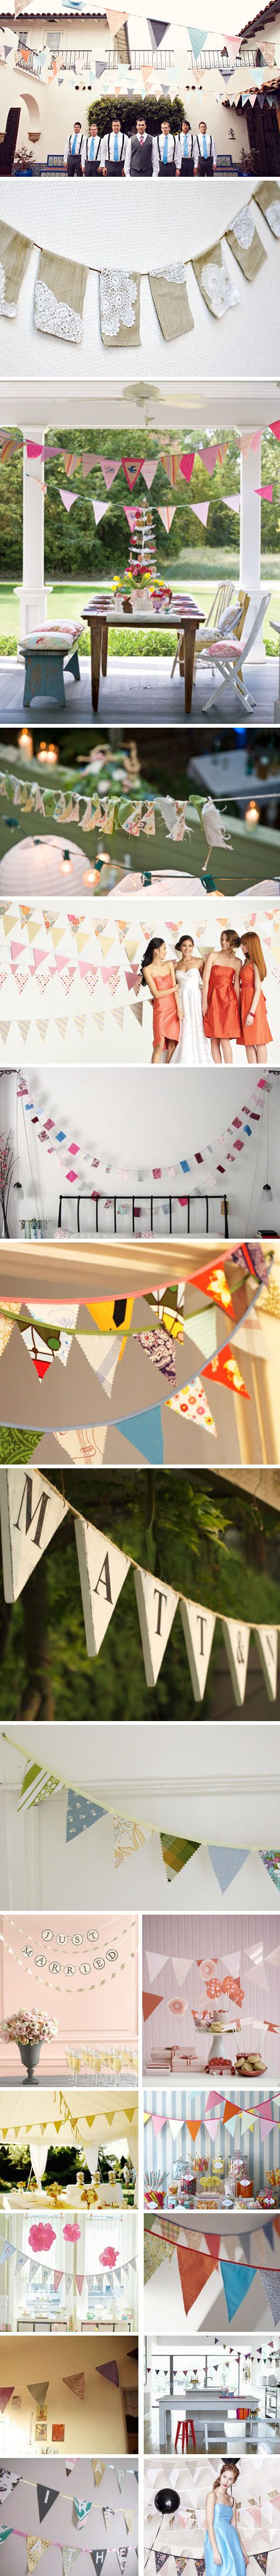 DIY: Shabby Chic banners! Weddings, school function, BD parties whatever your event this is hip! These whole fabric and paper flag banner things have become such a trend lately - I figured it was time to finally do a post on them. Here are some of my faves. I love this shabby chic style that can be customized for any event :) I am just wondering...is it overdone? Is it a trend that will die out?